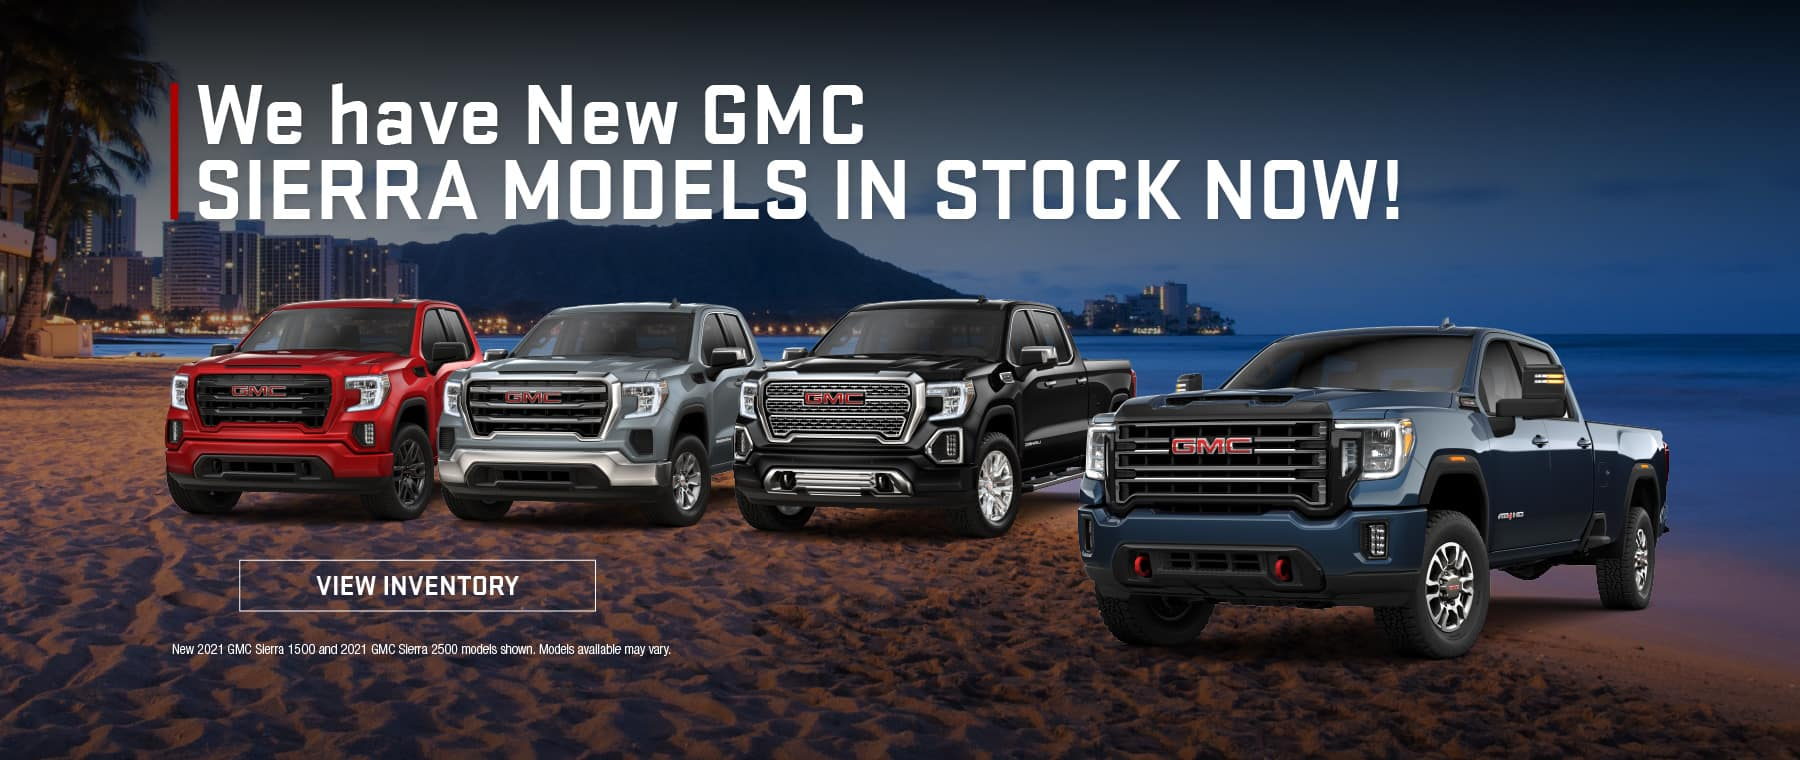 We have New GMC